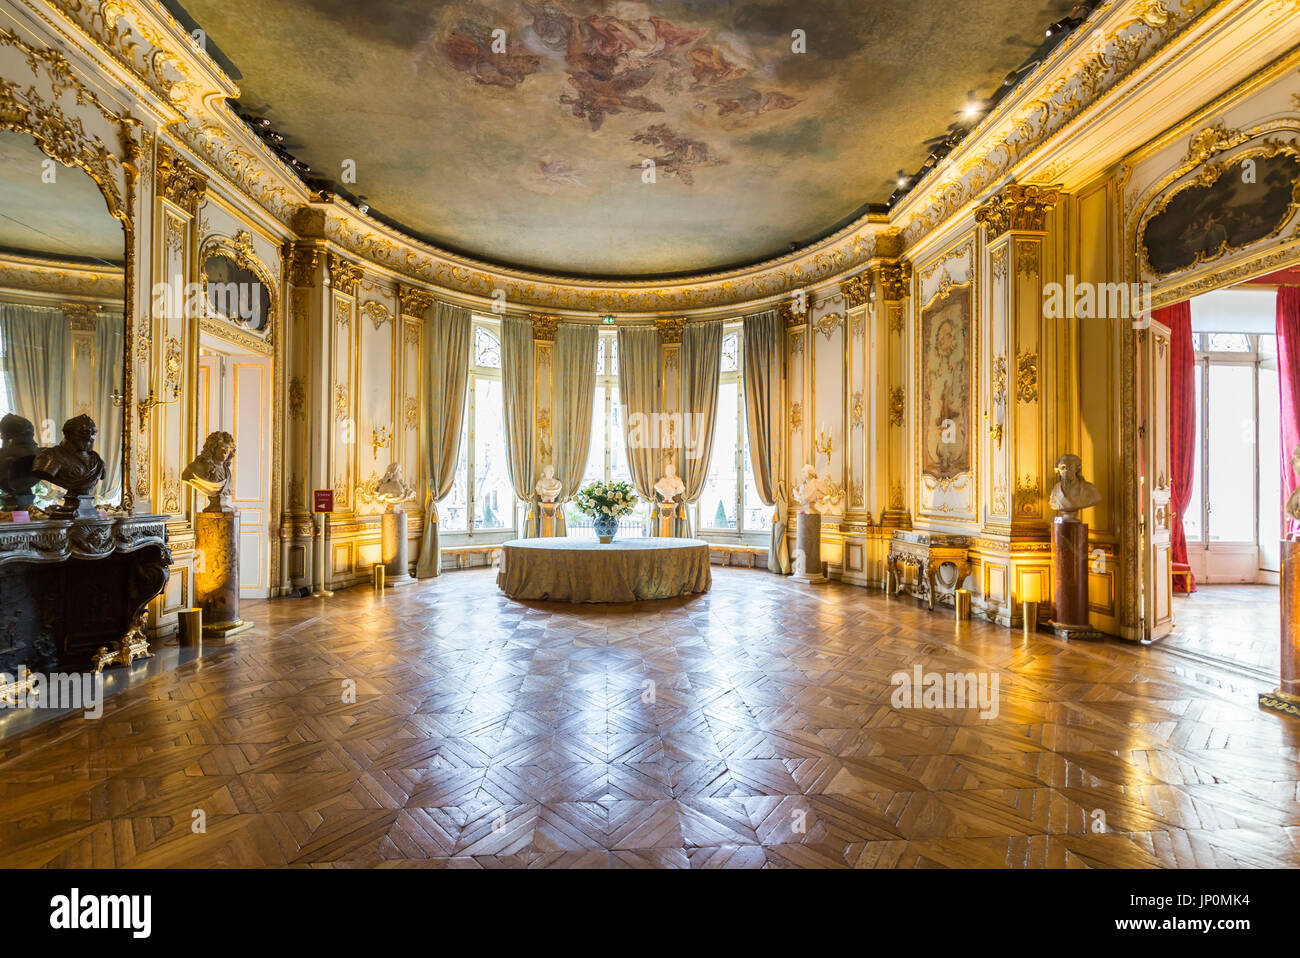 Grand salon stock photos grand salon stock images alamy - Salon france amerique paris 8 ...